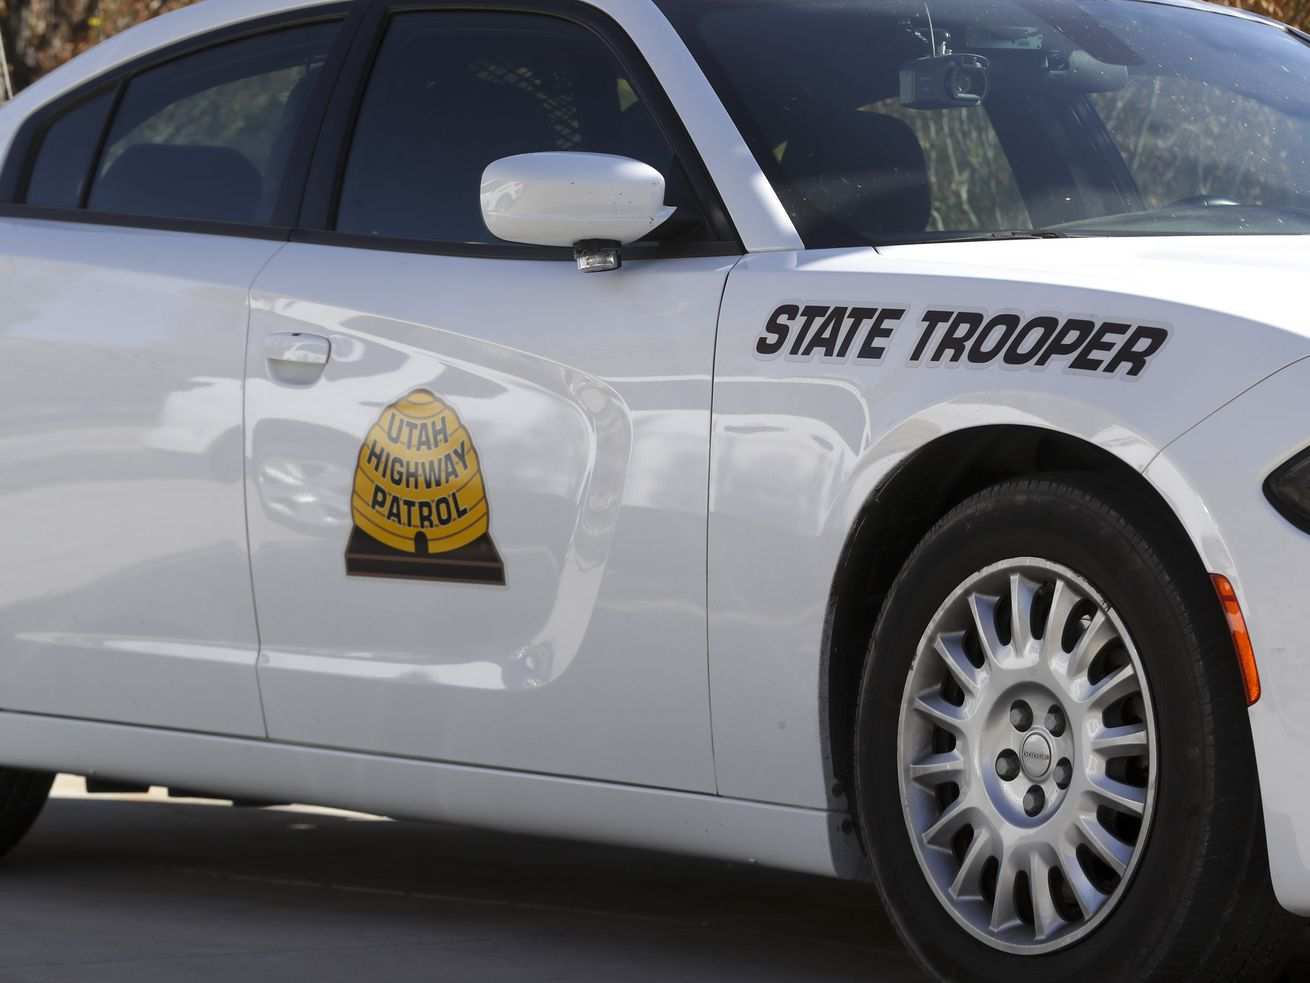 A Utah Highway Patrol vehicle in Salt Lake City is pictured on Thursday, Oct. 22, 2020.